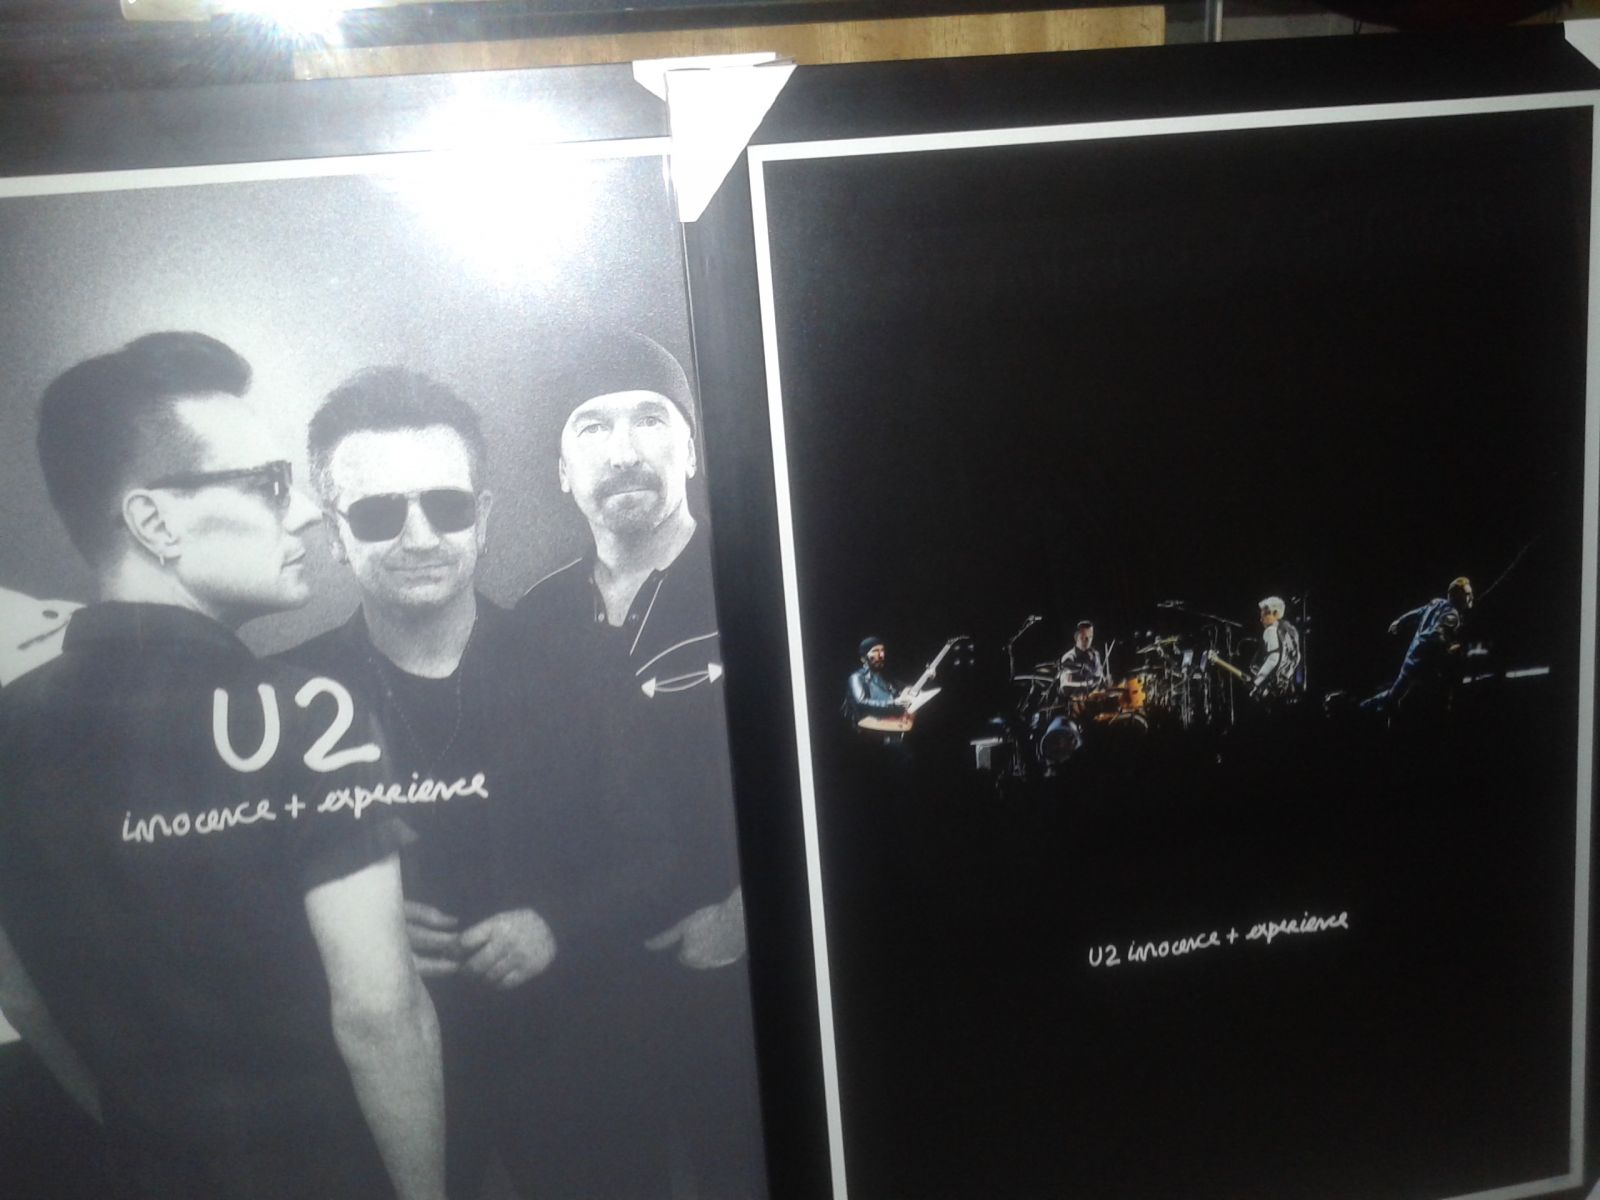 Striking visual iconography of the #U2ieTour #U2iePrints